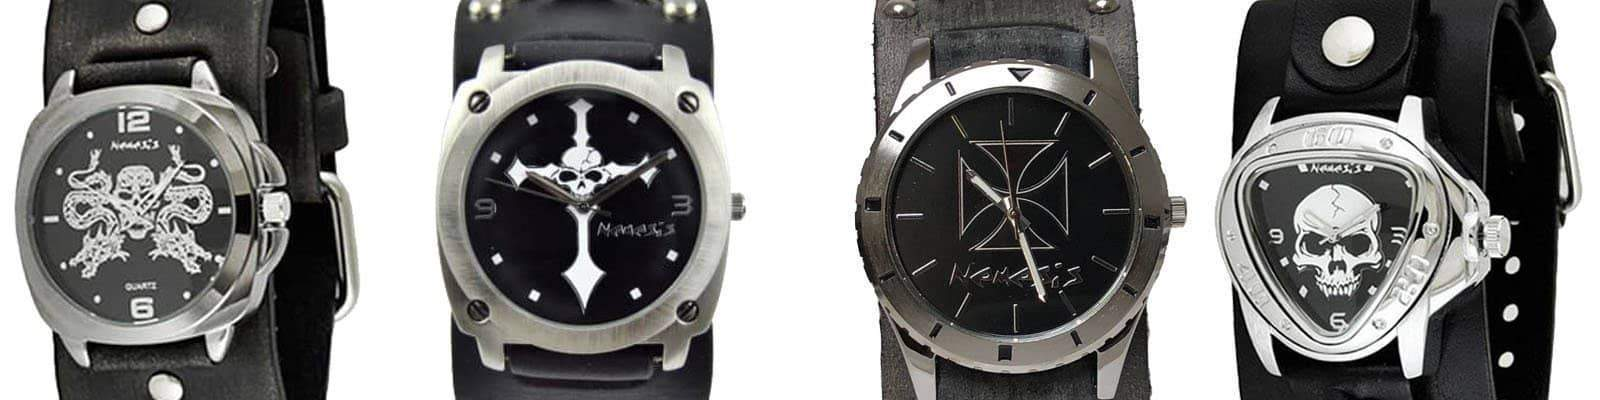 PUNK ROCK WATCHES